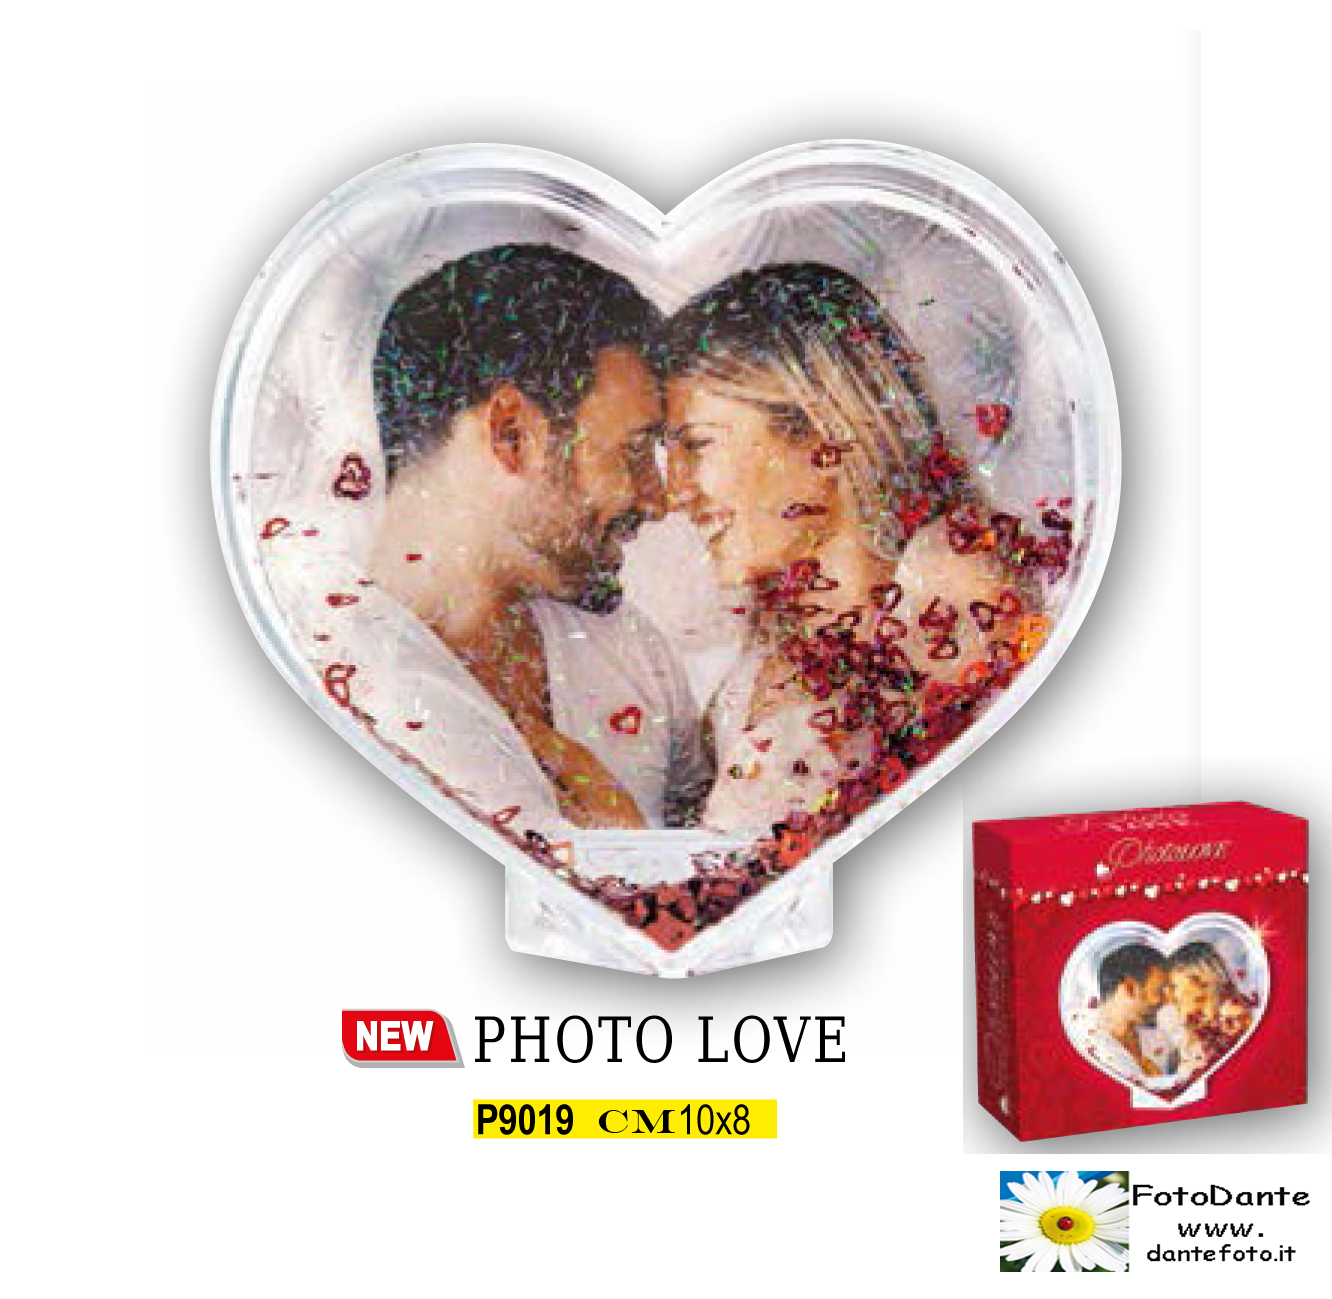 PHOTO GLOBE CUORE / PHOTO LOVE